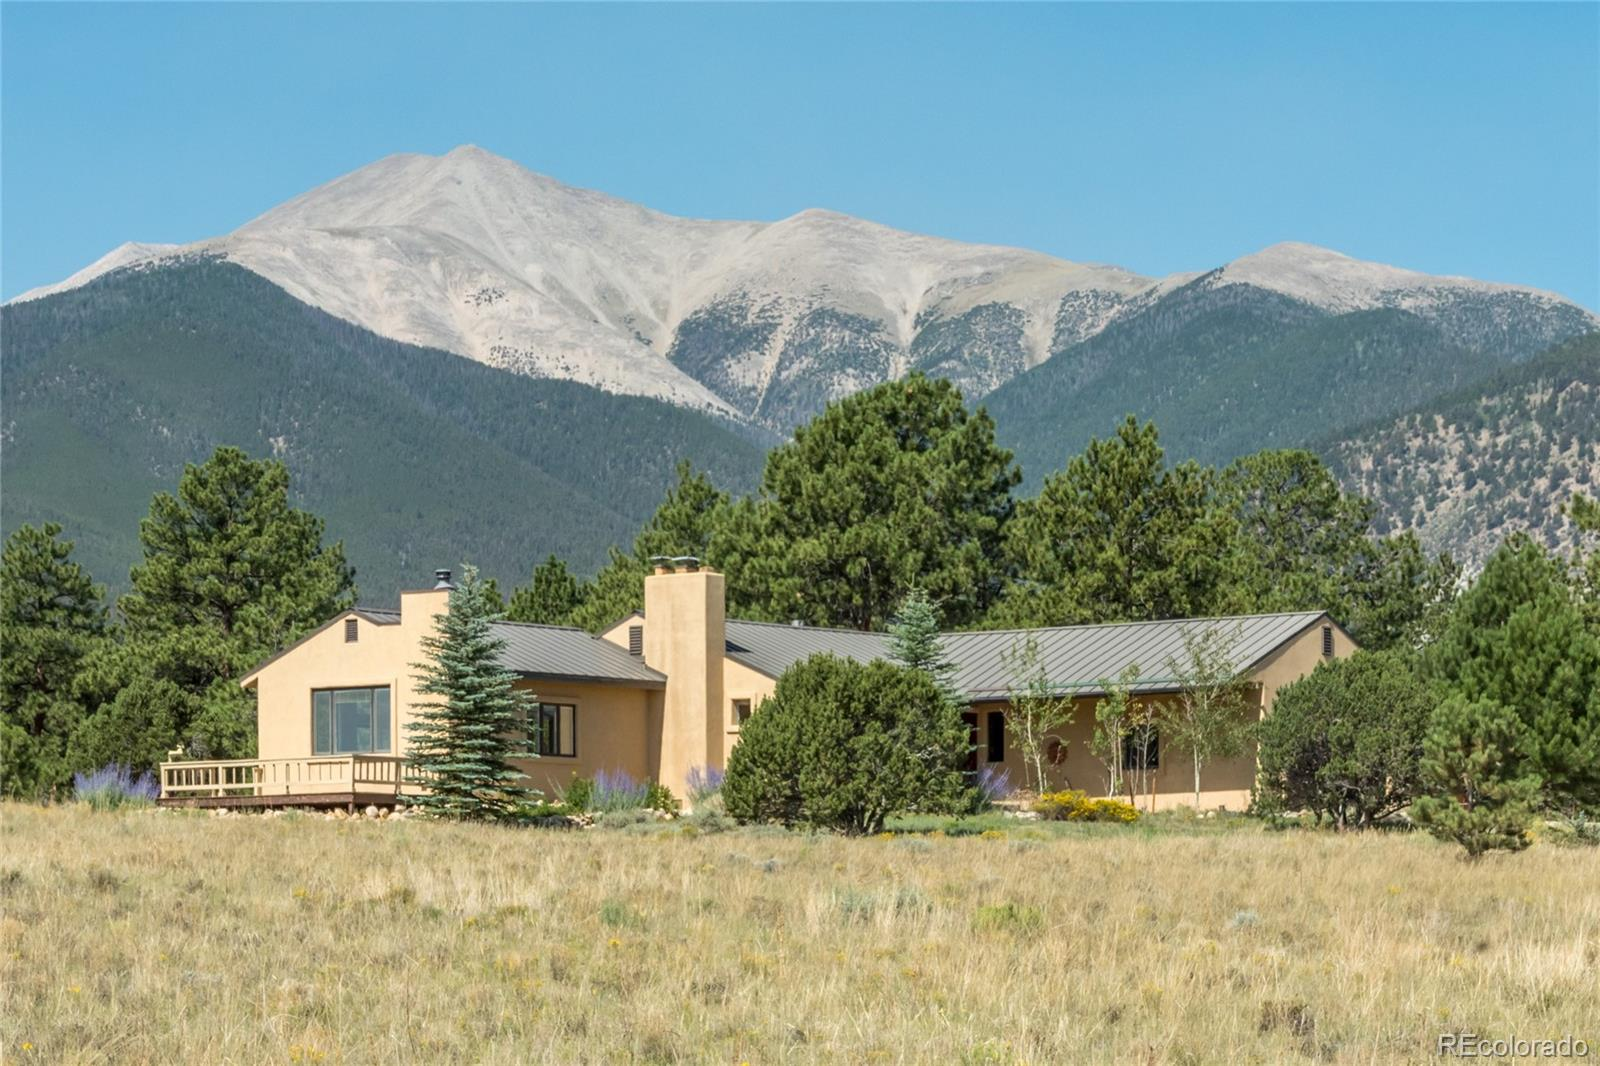 17890 County Road 261i, Nathrop, CO 81236 - Nathrop, CO real estate listing